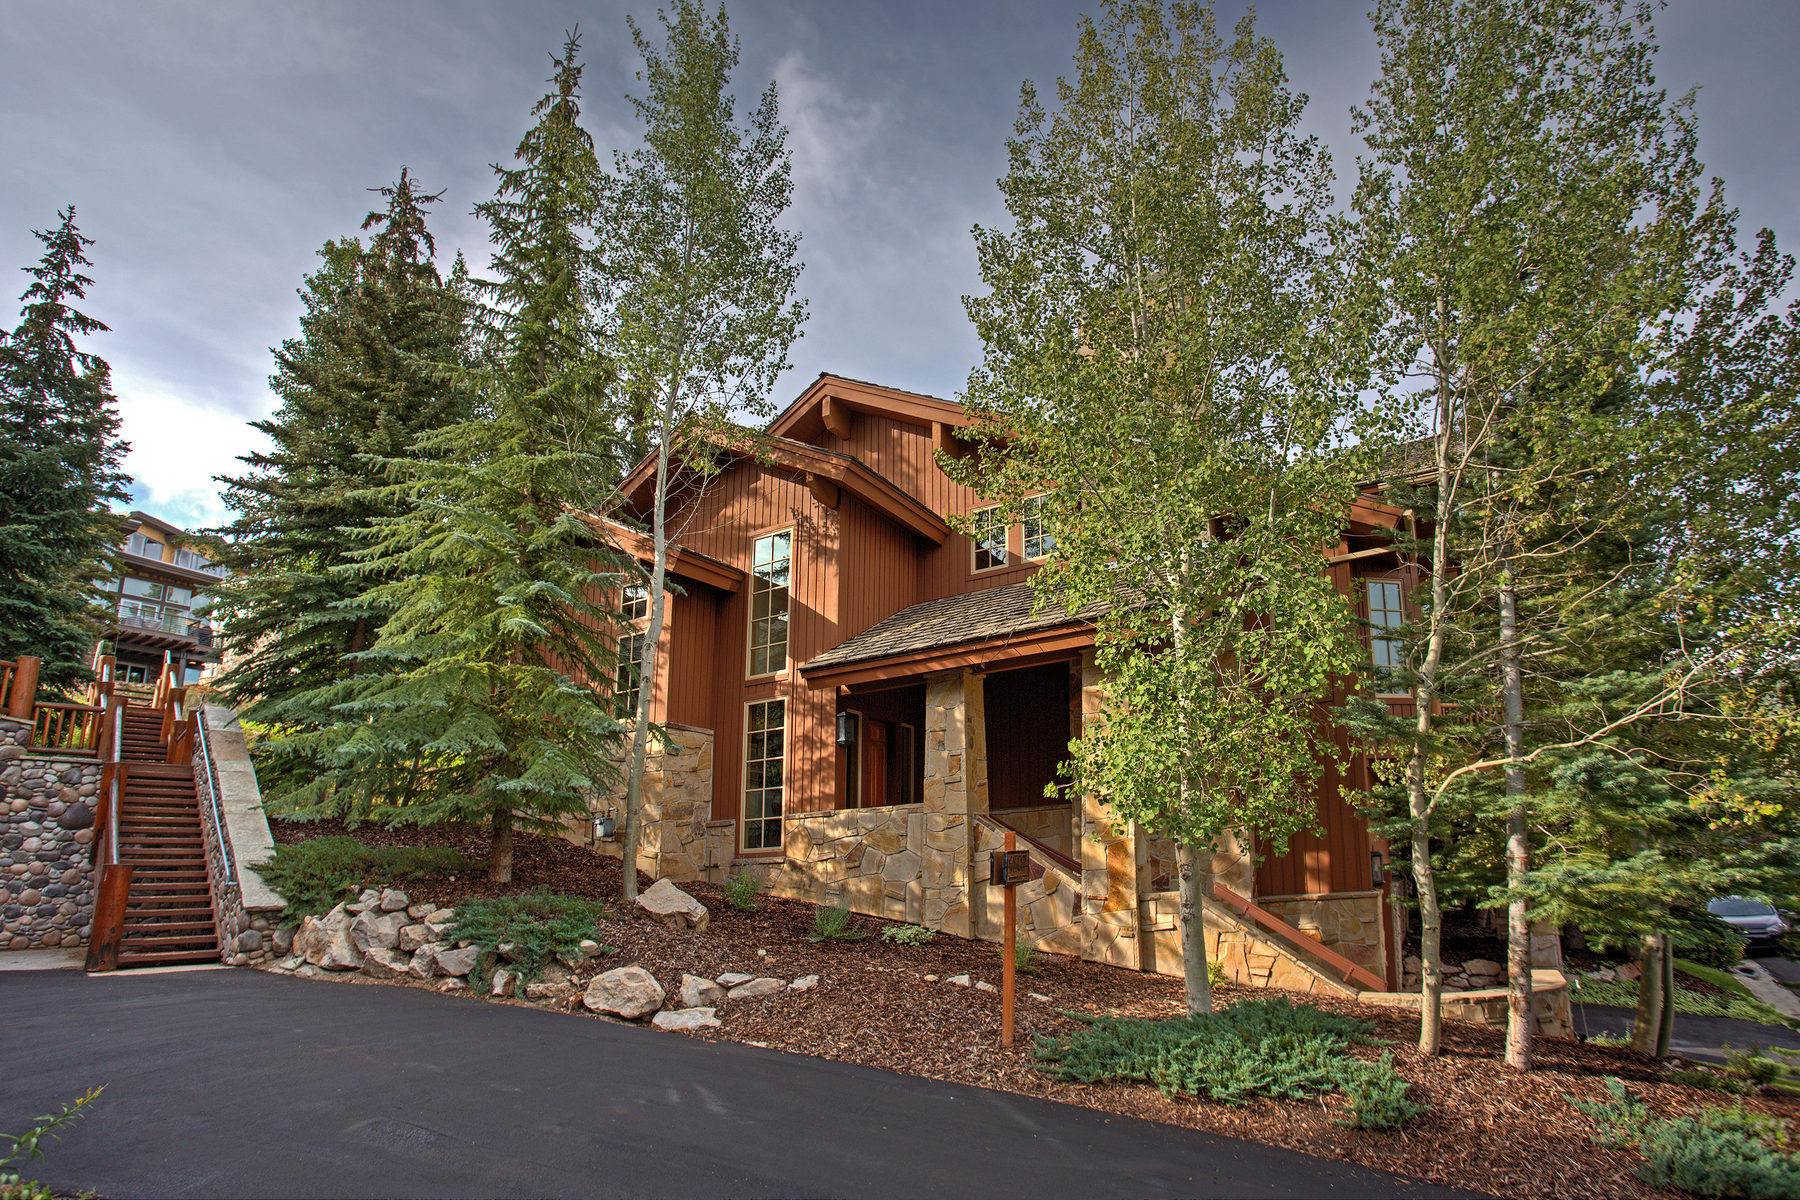 Villa per Vendita alle ore Stone's Throw from Skiing with Views 19 Bellevue Ct Park City, Utah, 84060 Stati Uniti